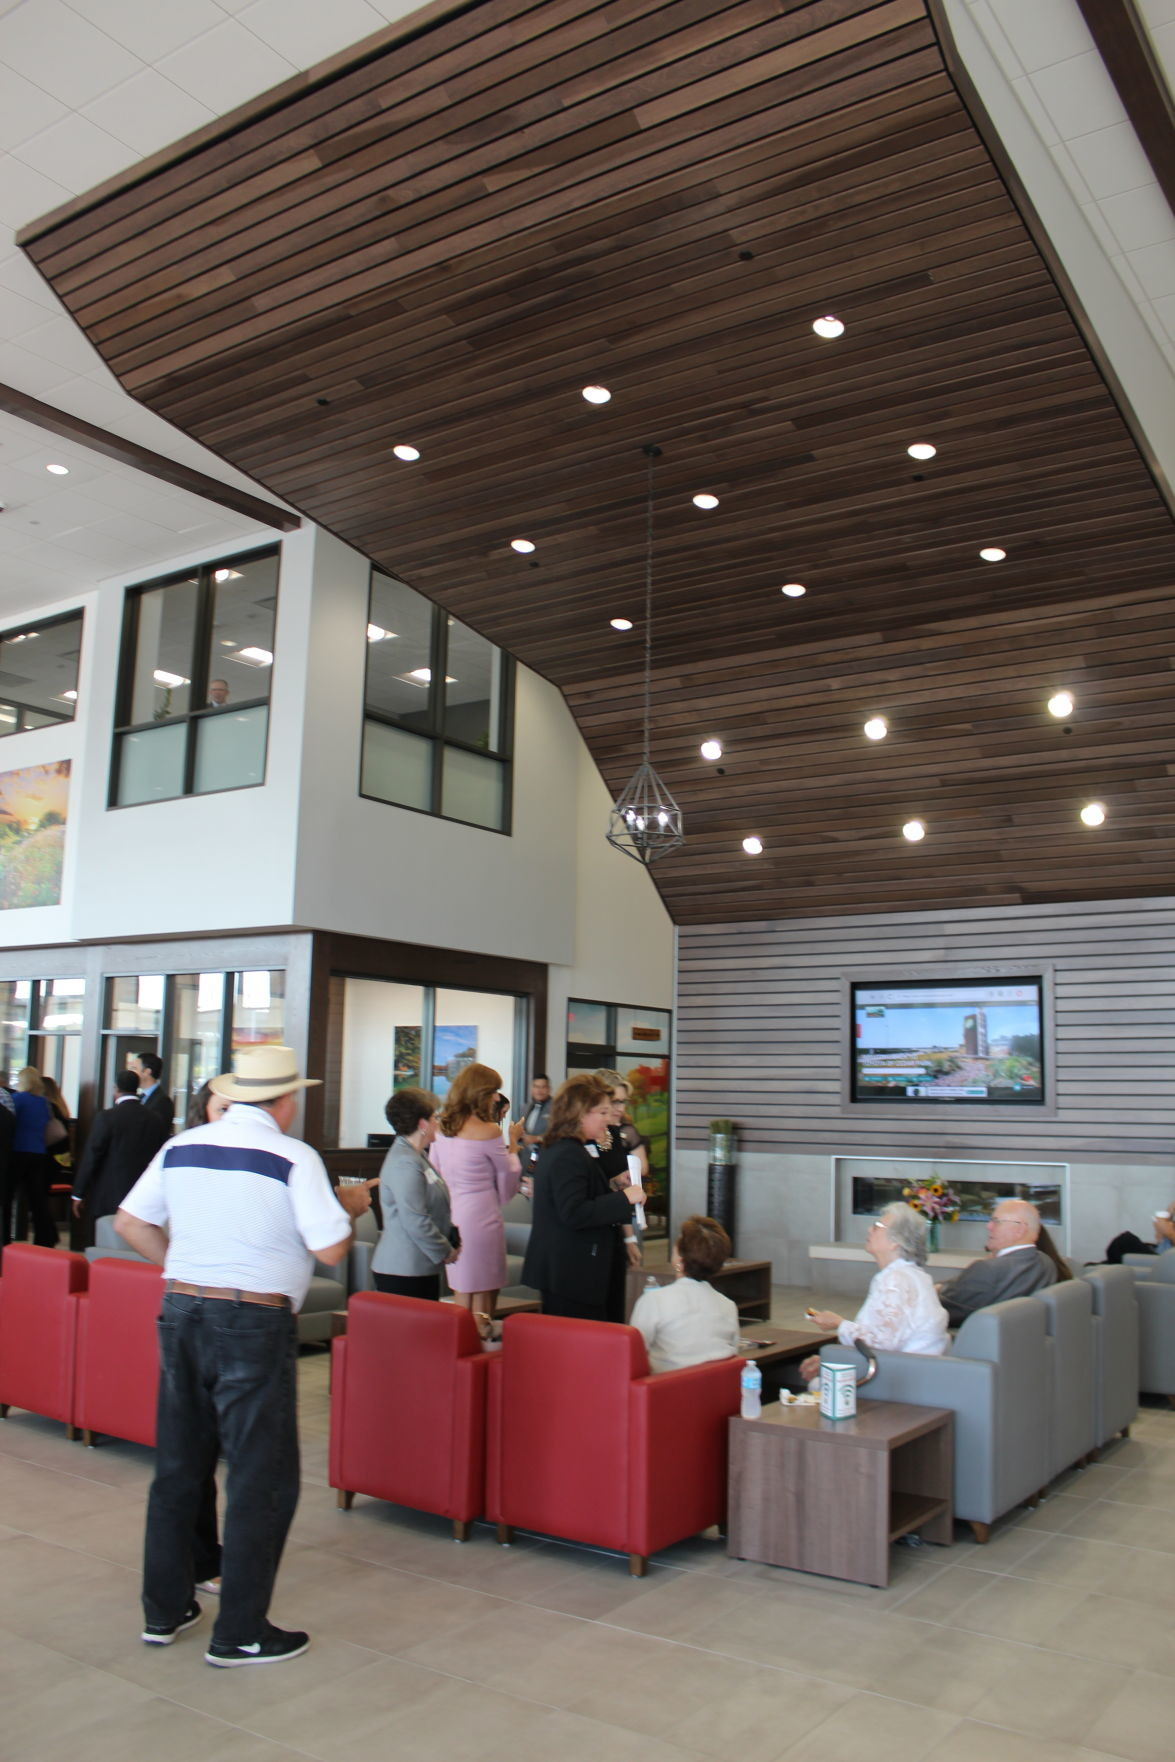 The cornerstone of the Toyota dealership's design is the rulan, a large, wood paneled half-arch that towers up into the ceiling of the customer lounge.